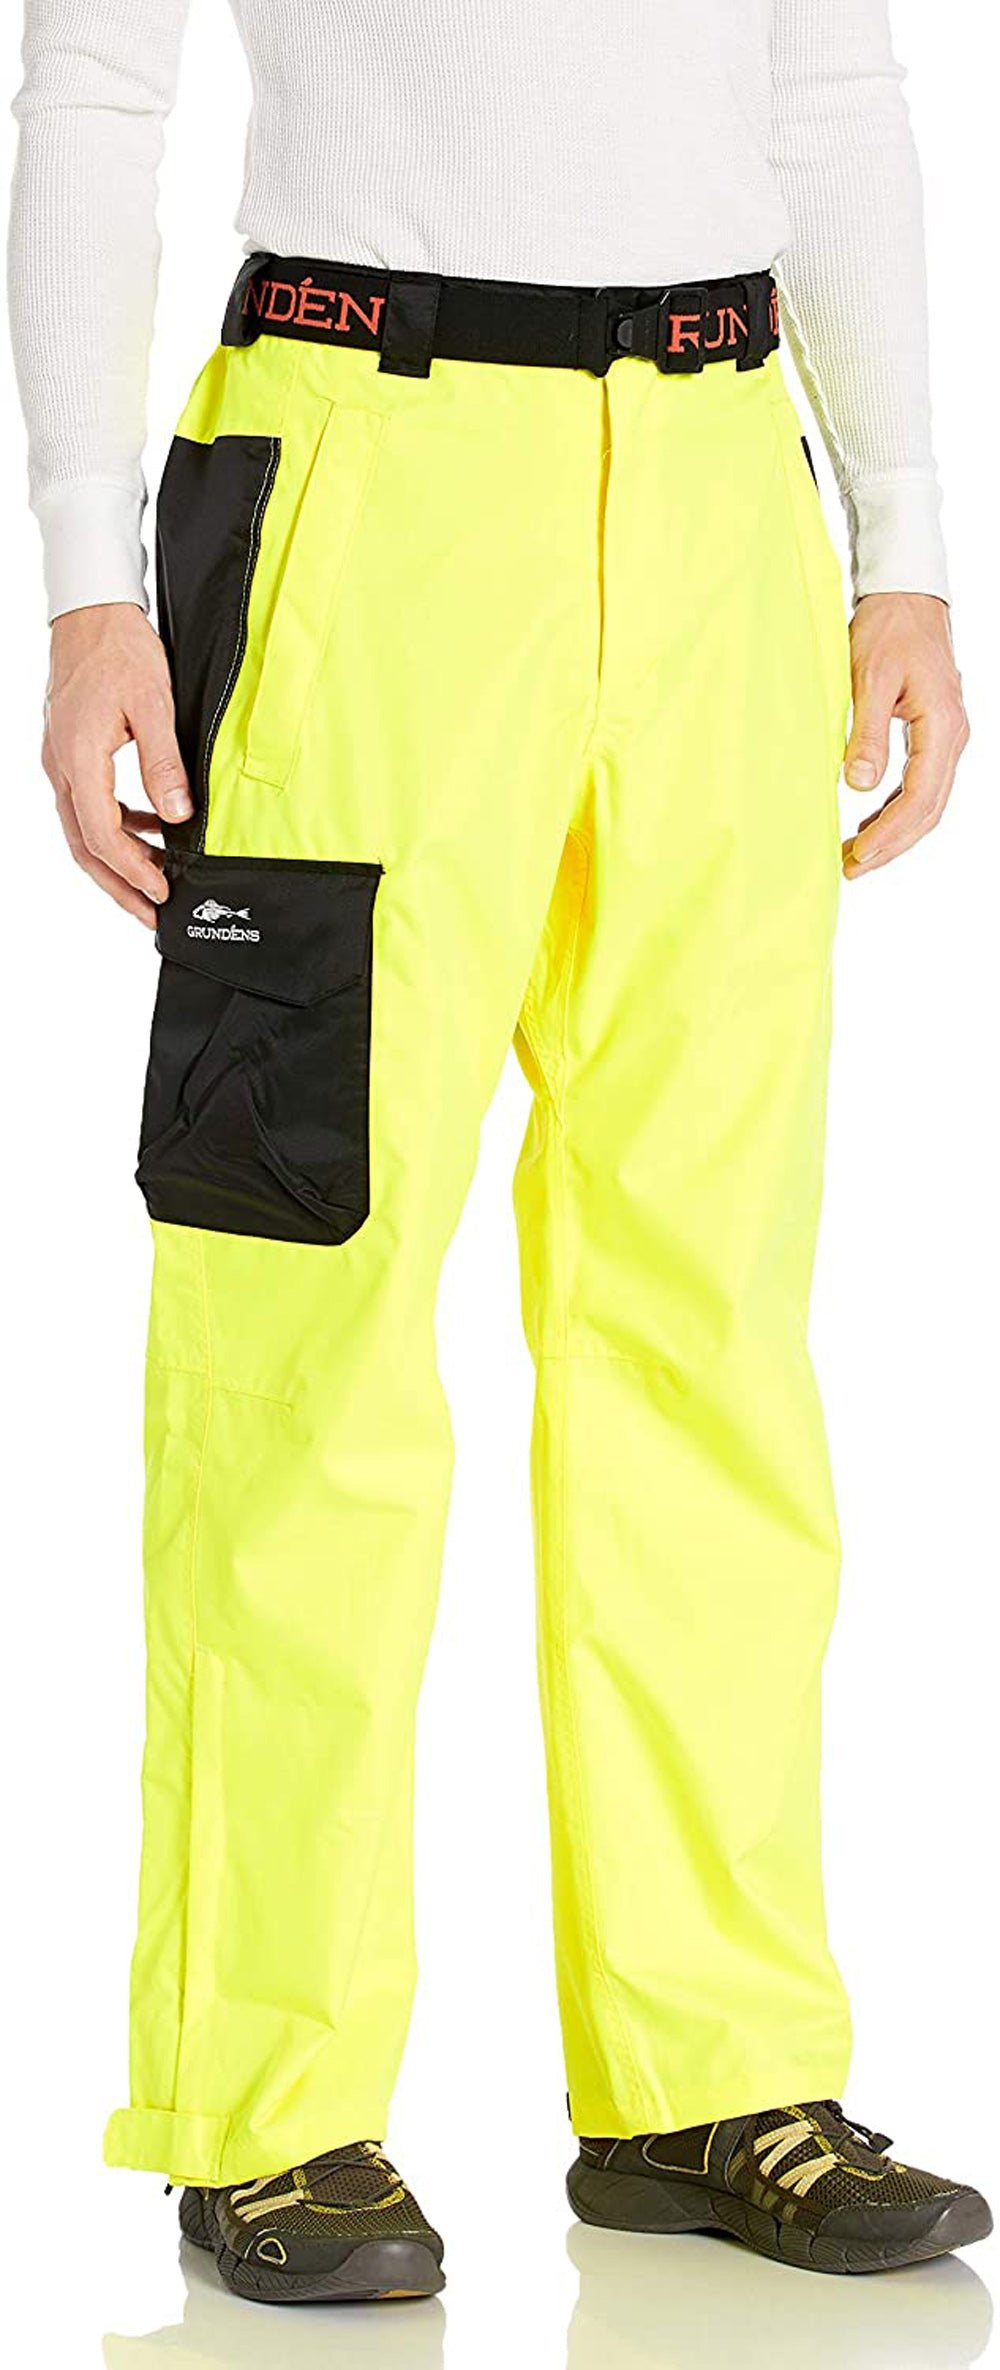 Weather Watch Pant in Hi Vis Yellow color